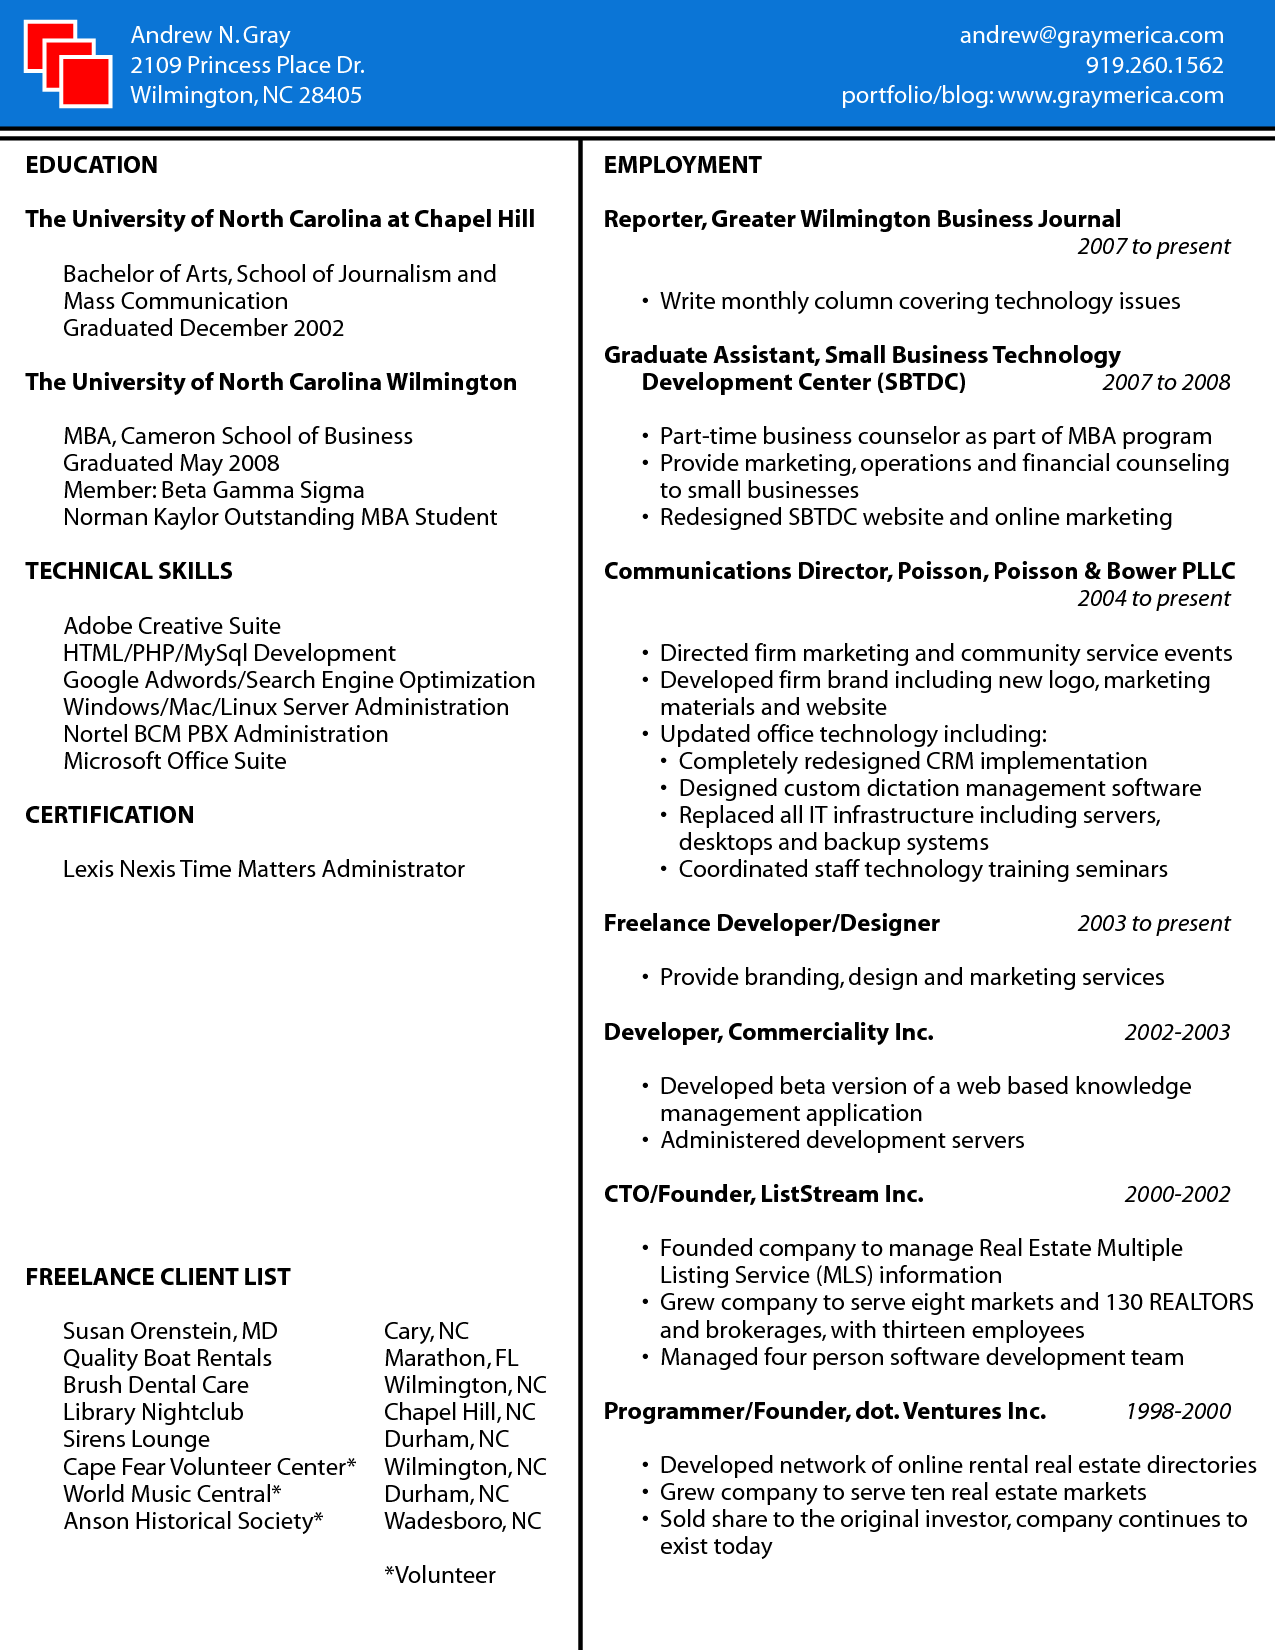 Resume Templates Microsoft Word 2008 Resume Templates Microsoft Word